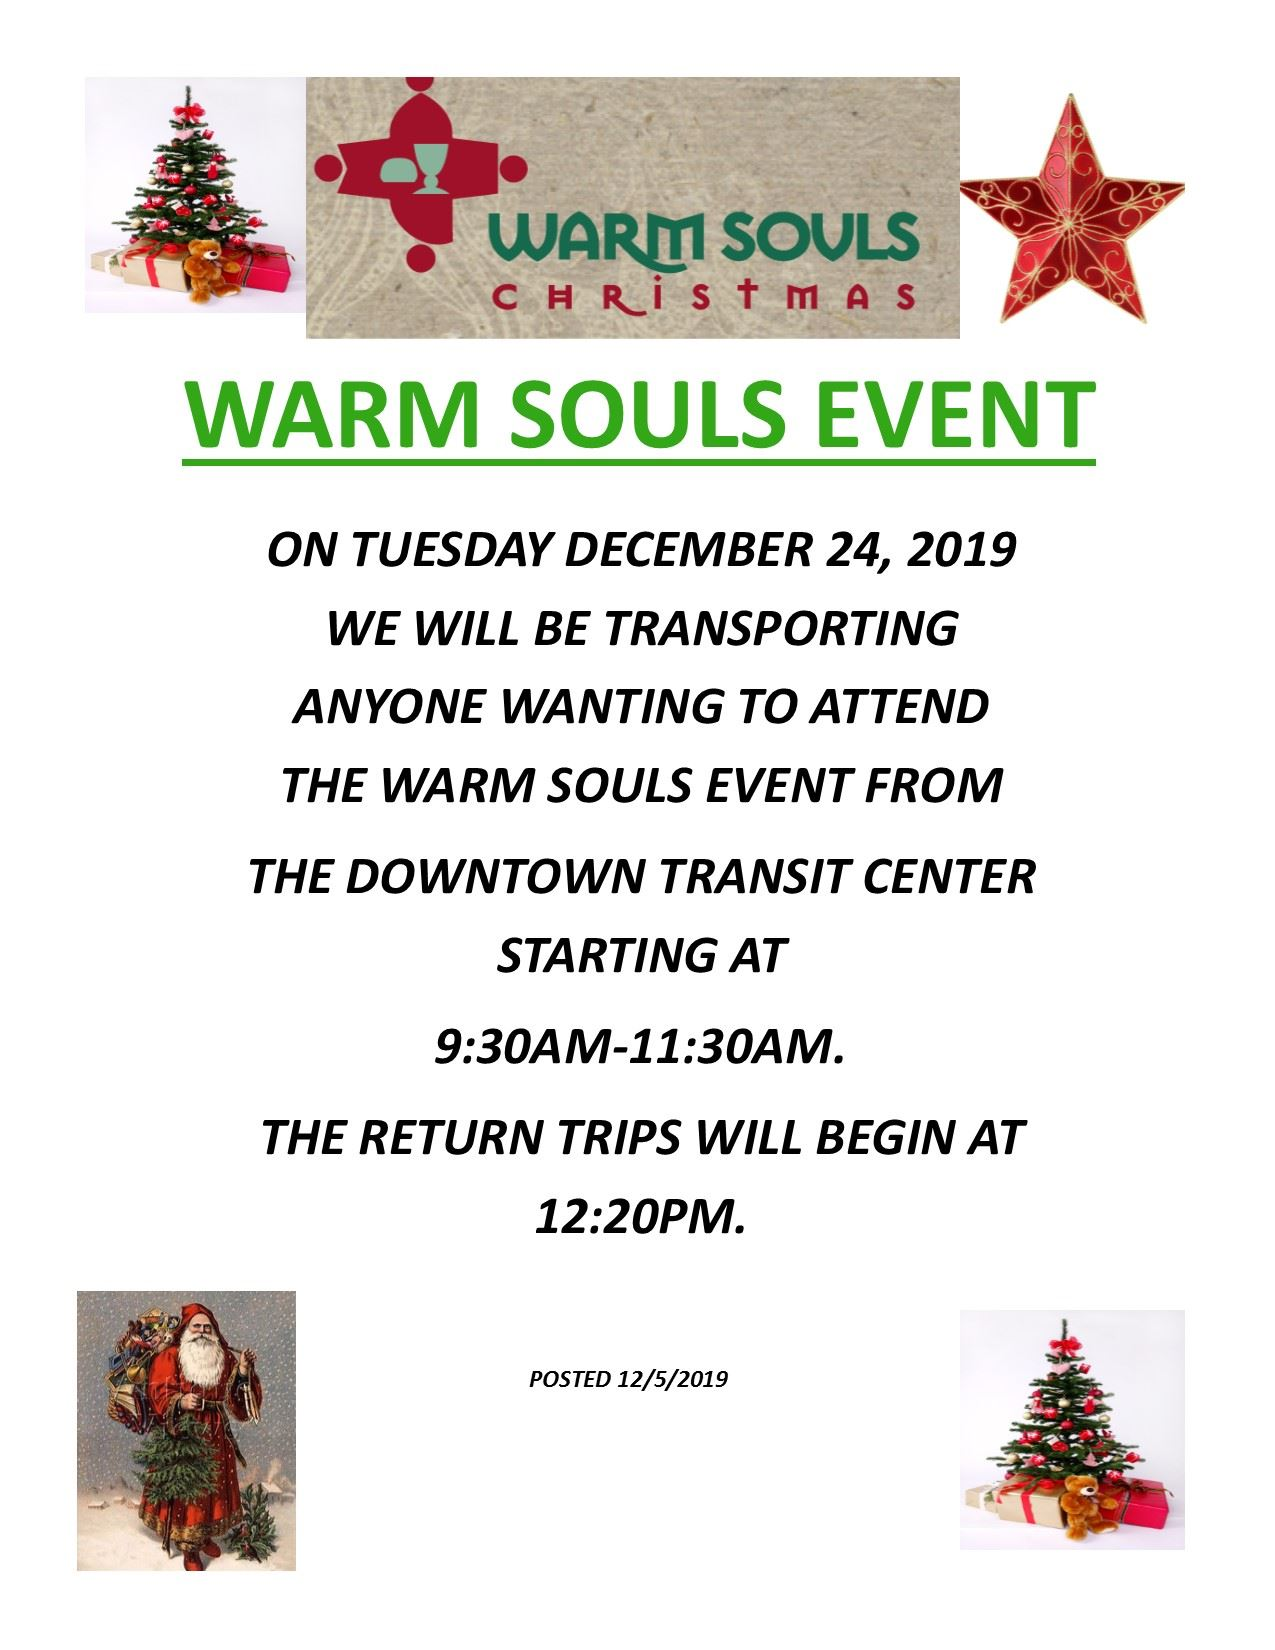 Warm Souls Christmas Eve Ride 24 Dec. 2019